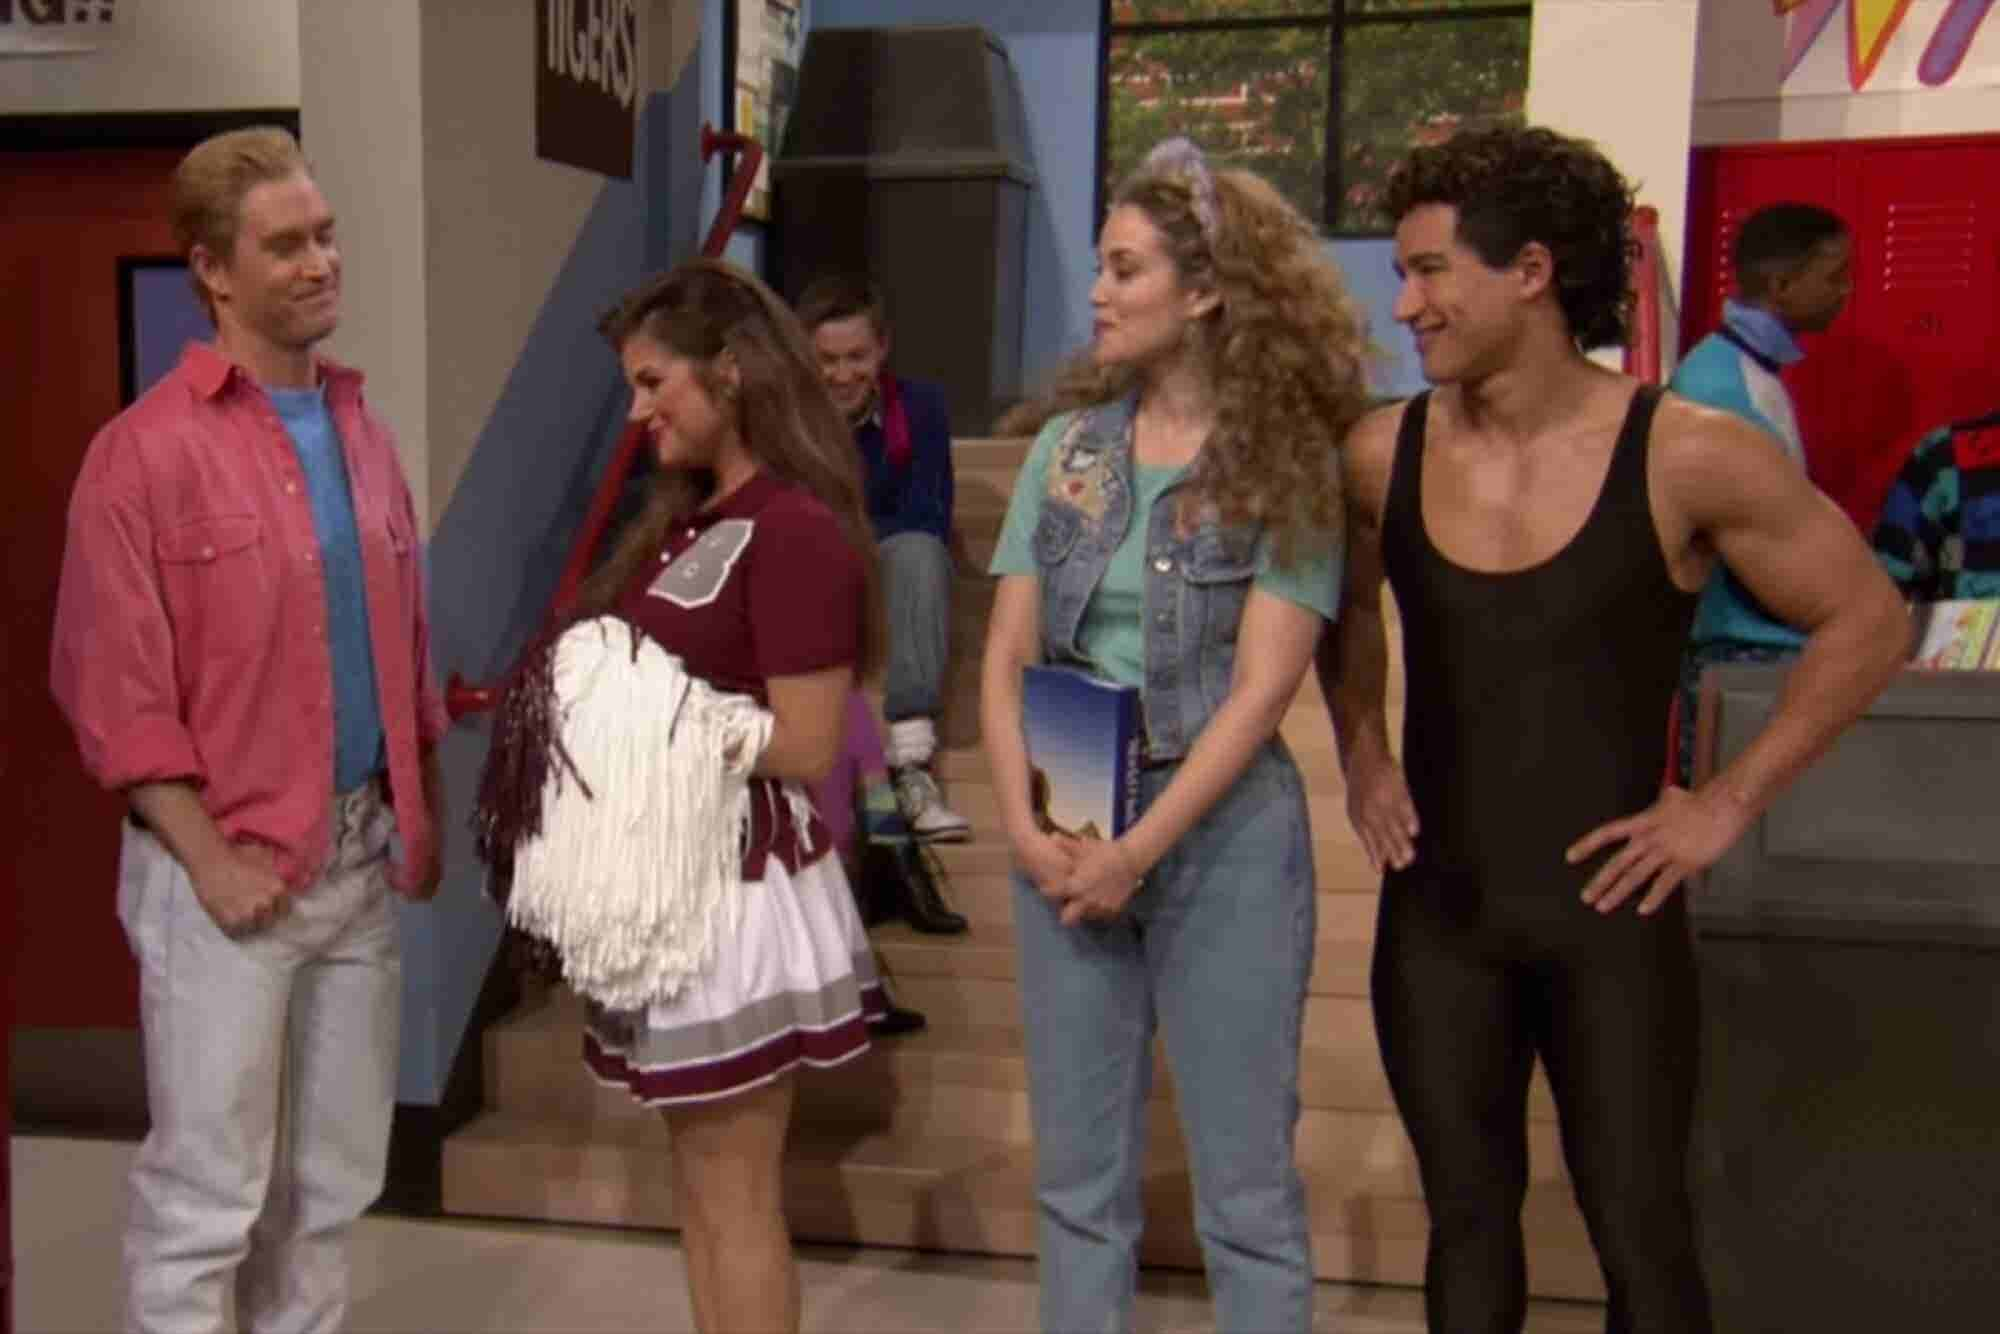 How 'Saved By The Bell' Reminded Me of the Power of Networking